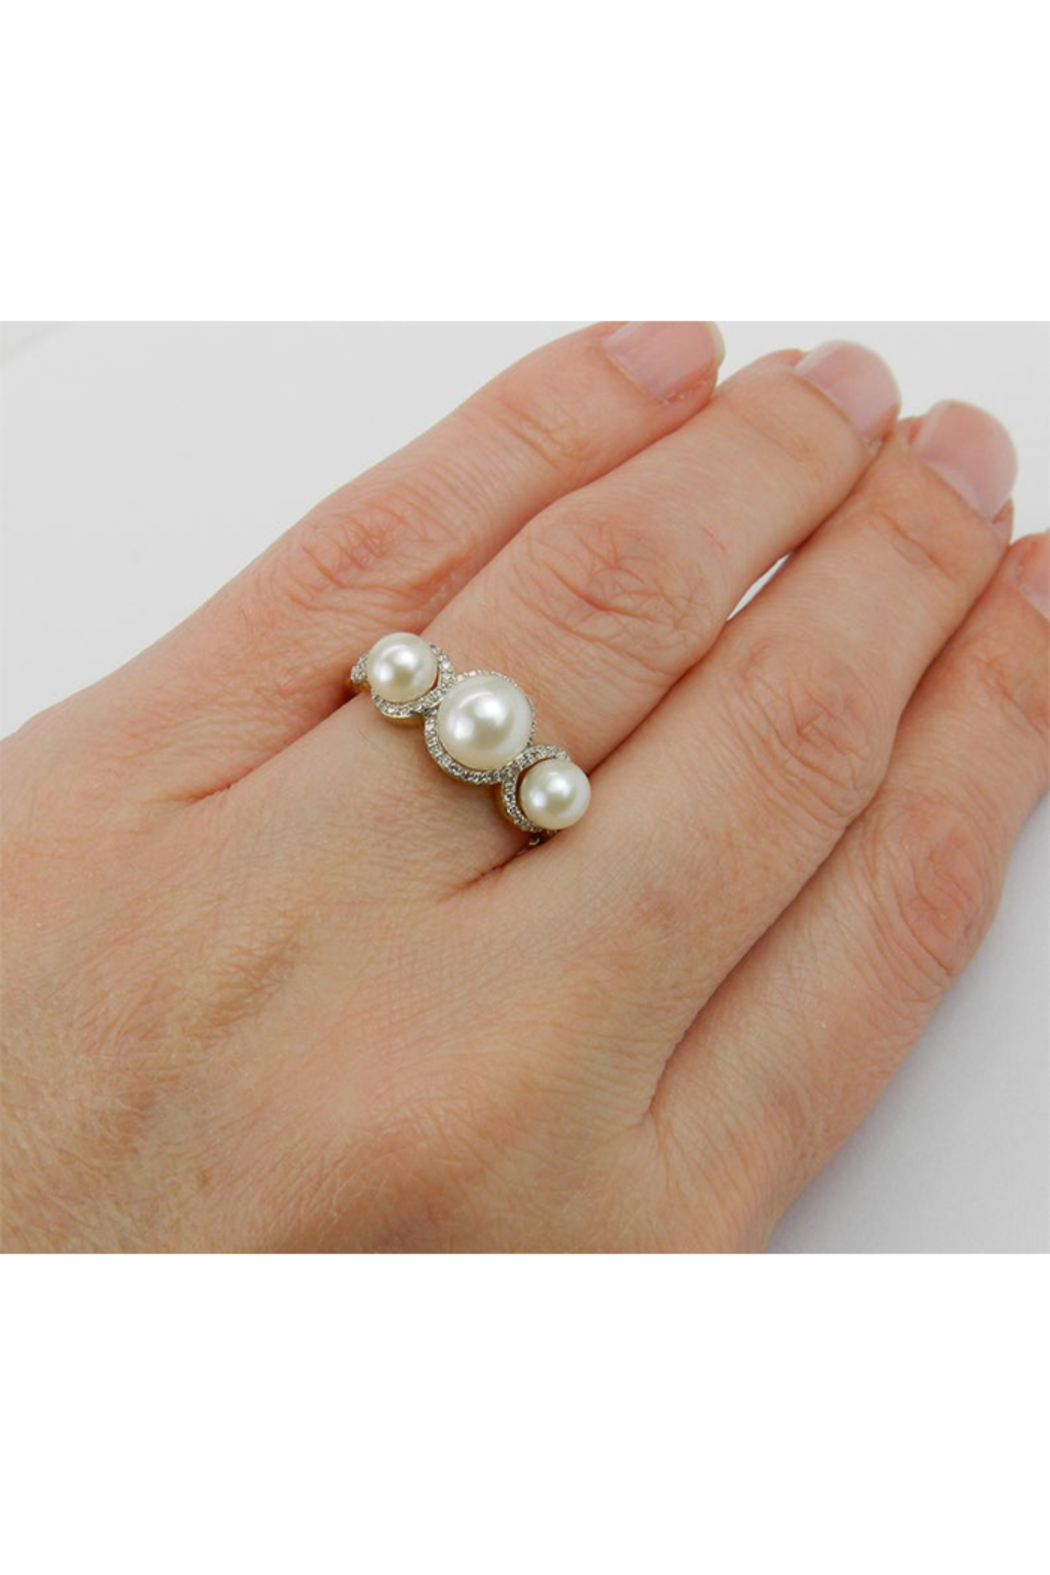 Margolin & Co Pearl and Diamond Ring, Halo Engagement Ring, Yellow Gold Three Stone Ring, Pearl Engagement Ring, June Birthstone Ring, Pearl Ring - Main Image